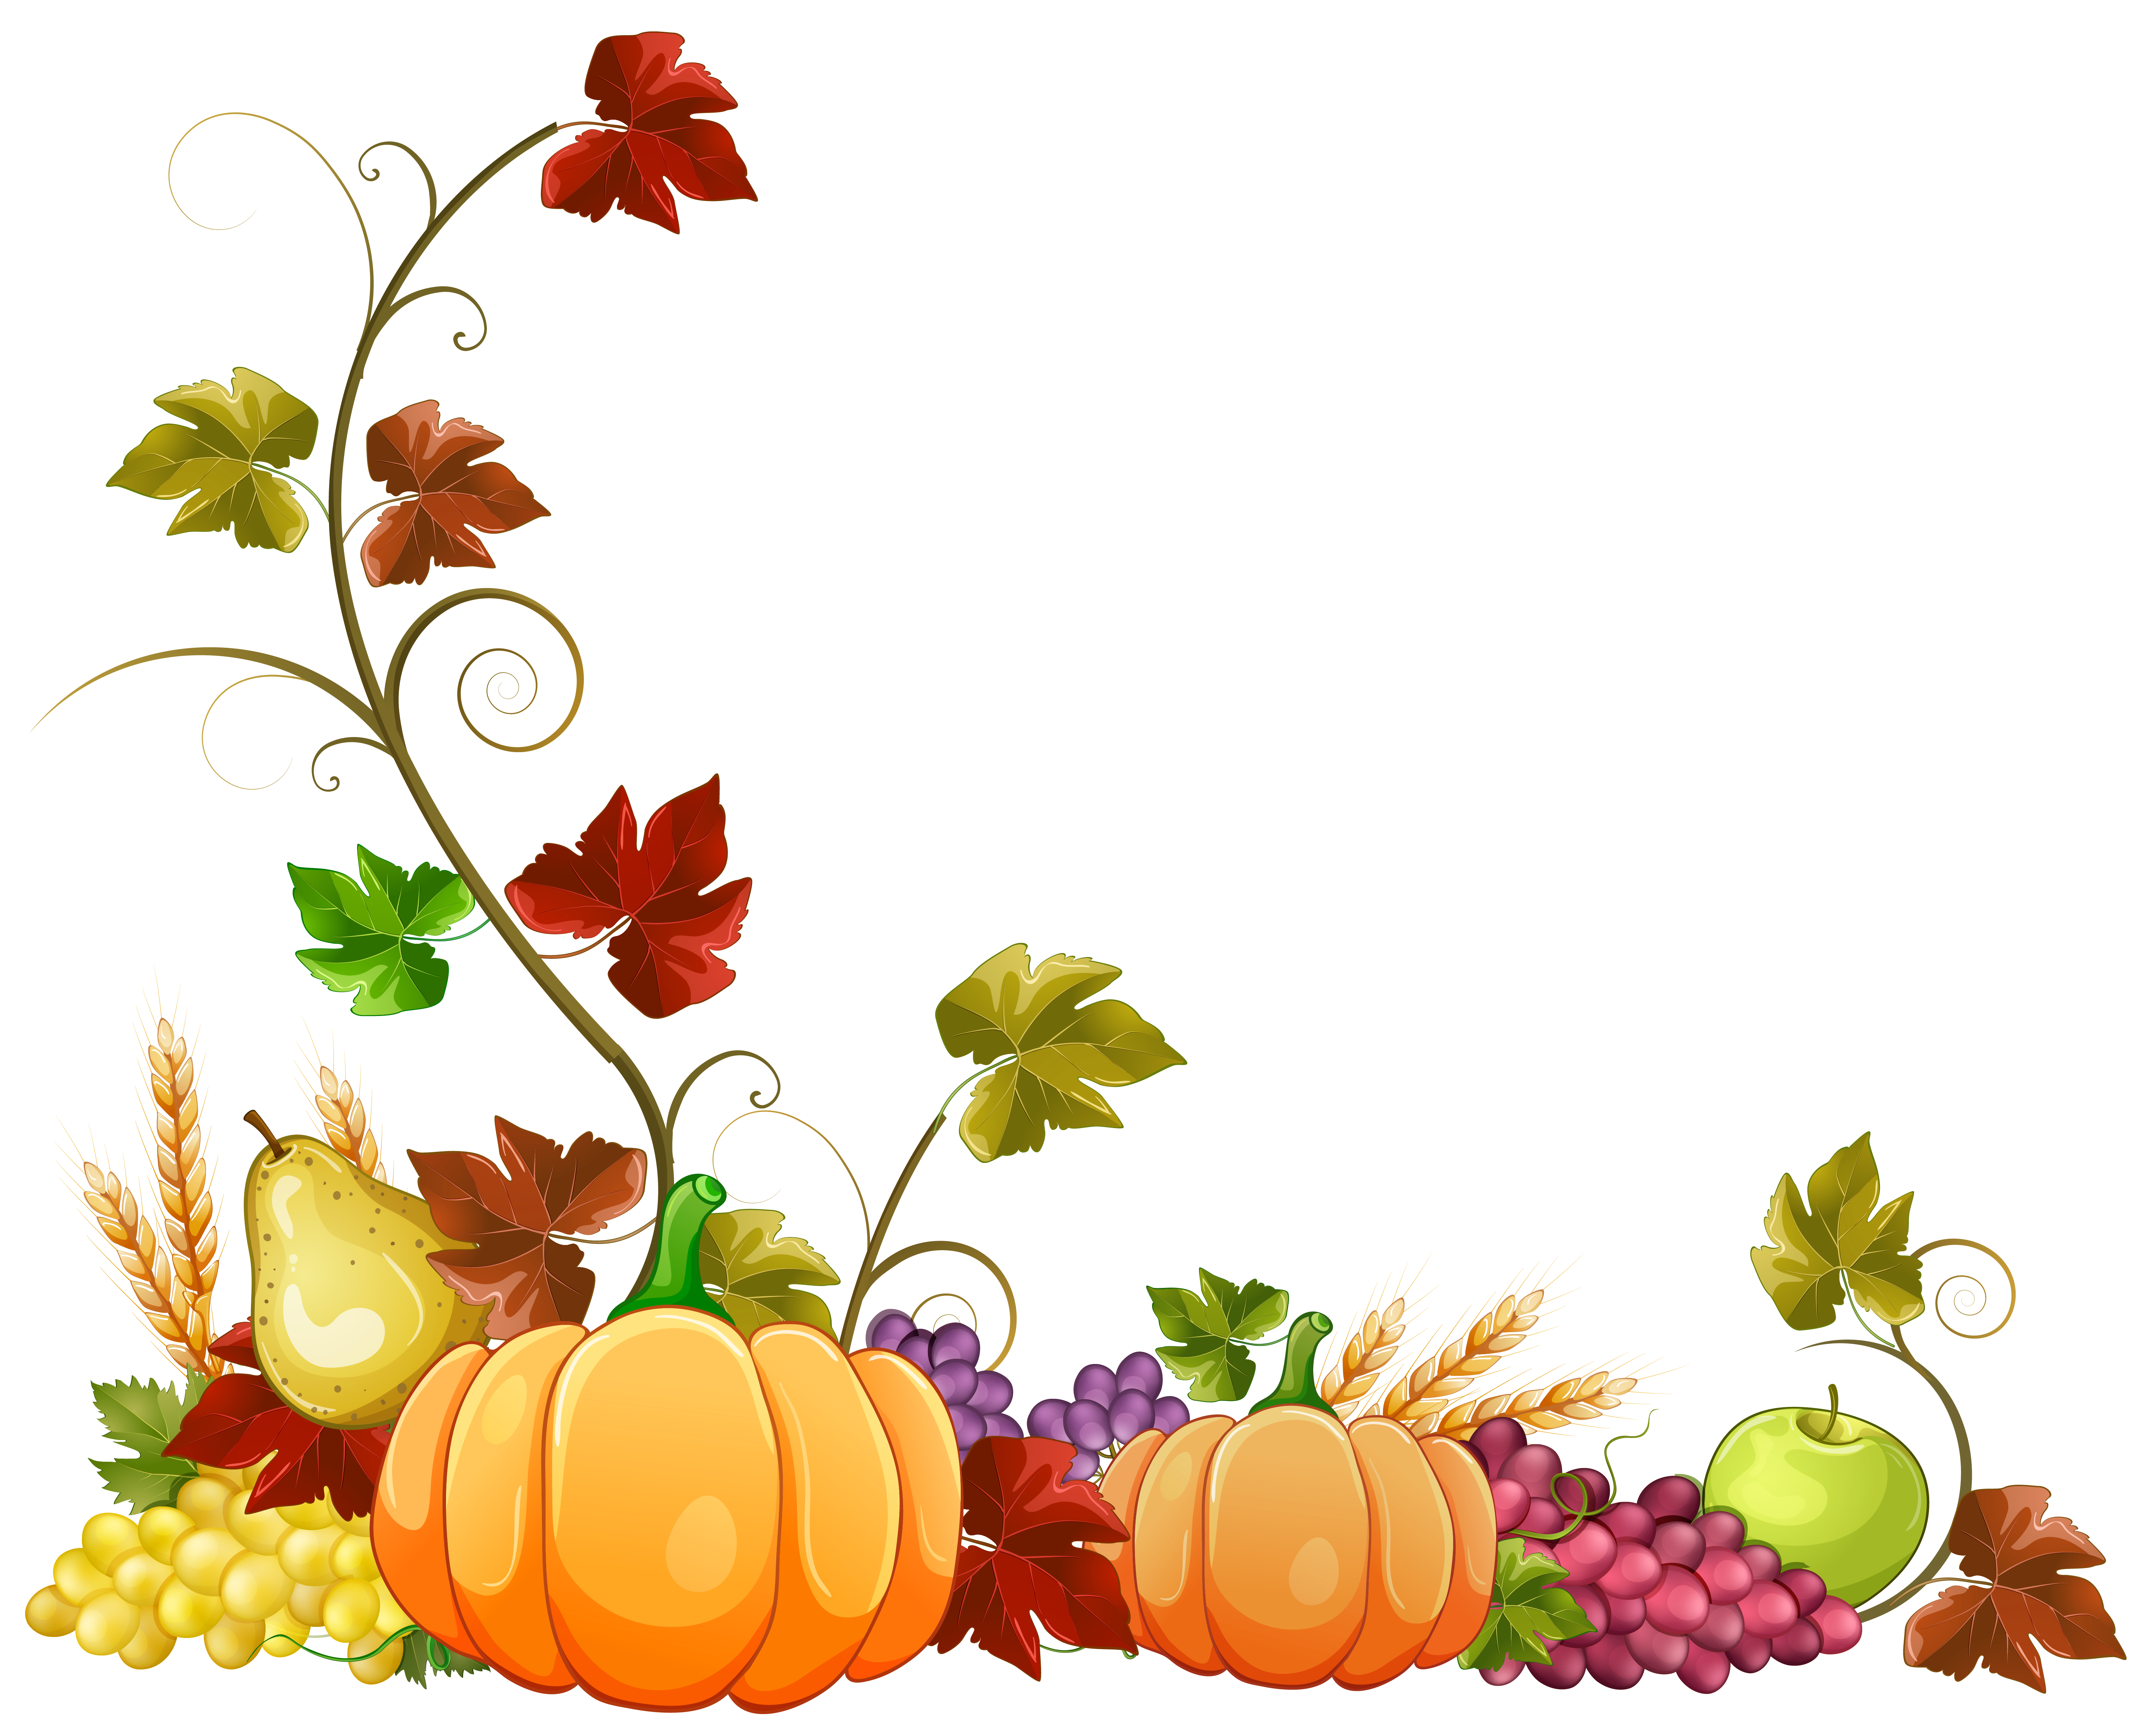 Vines clipart autumn. Pin by joanie lawrence